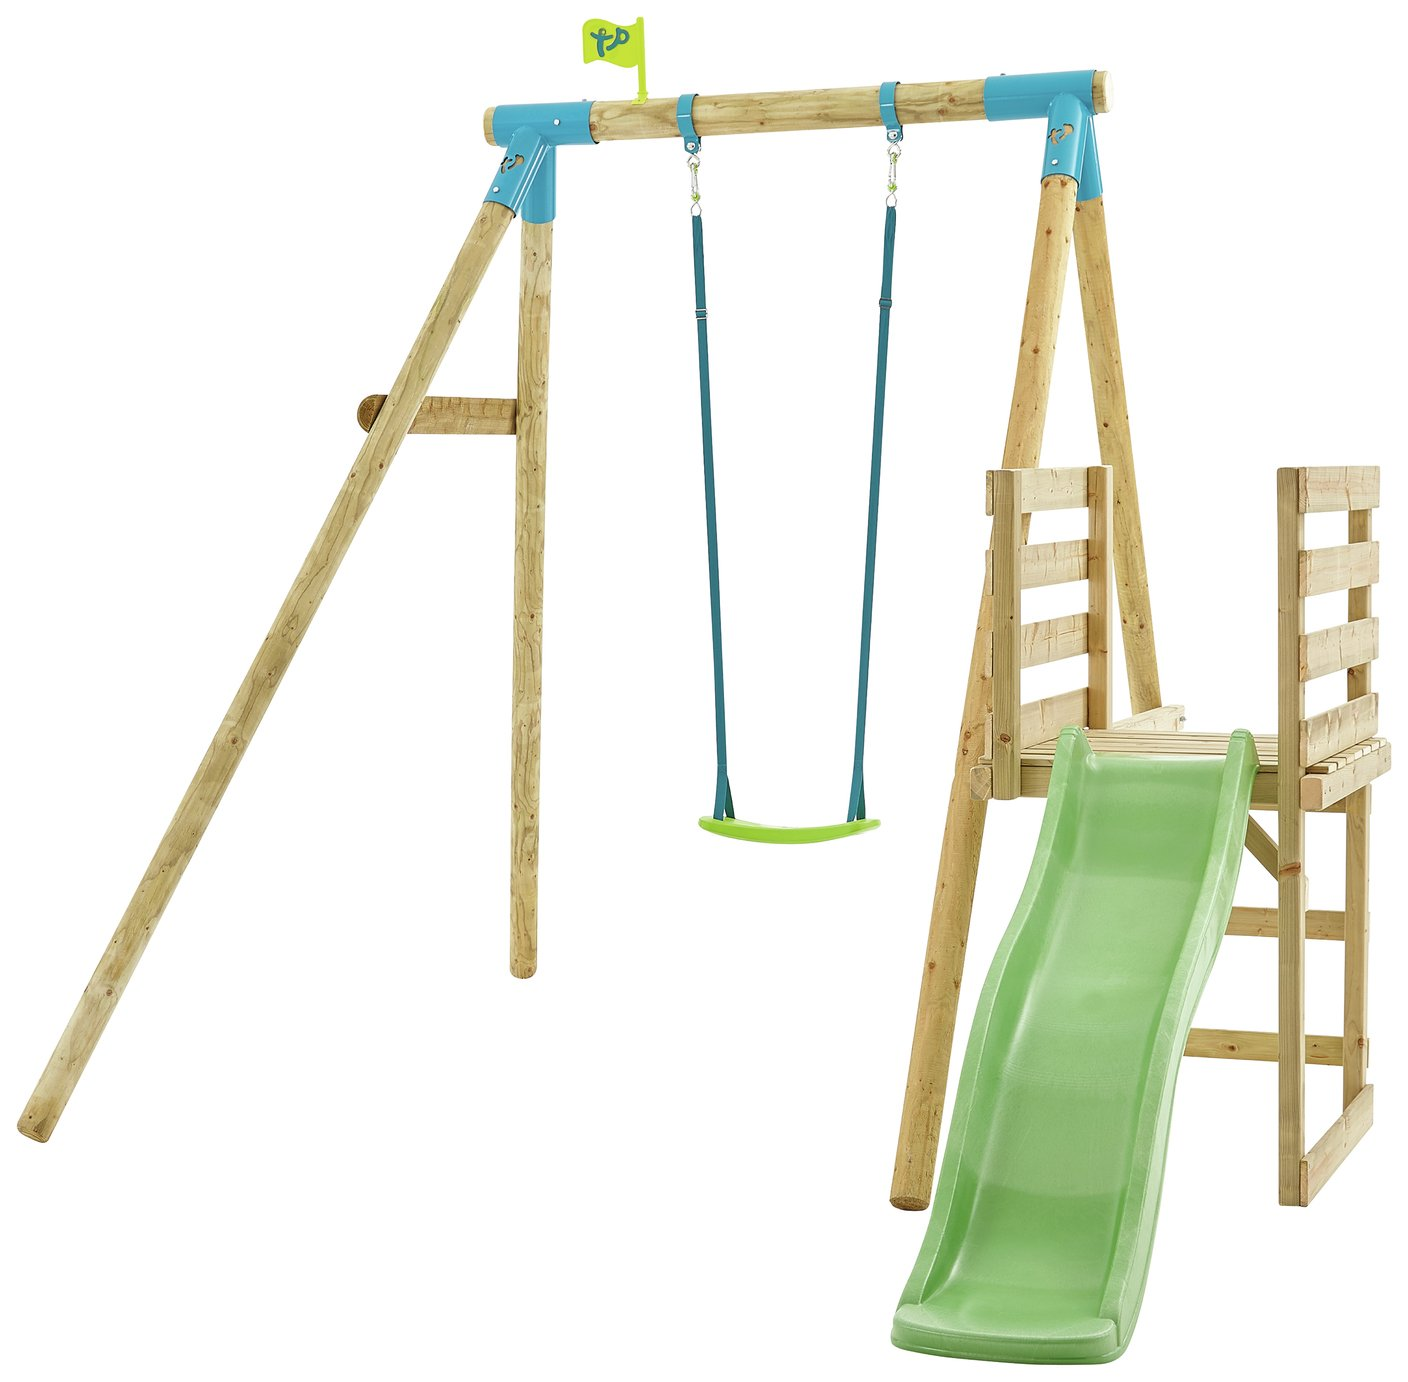 TP Compact Swing And Slide